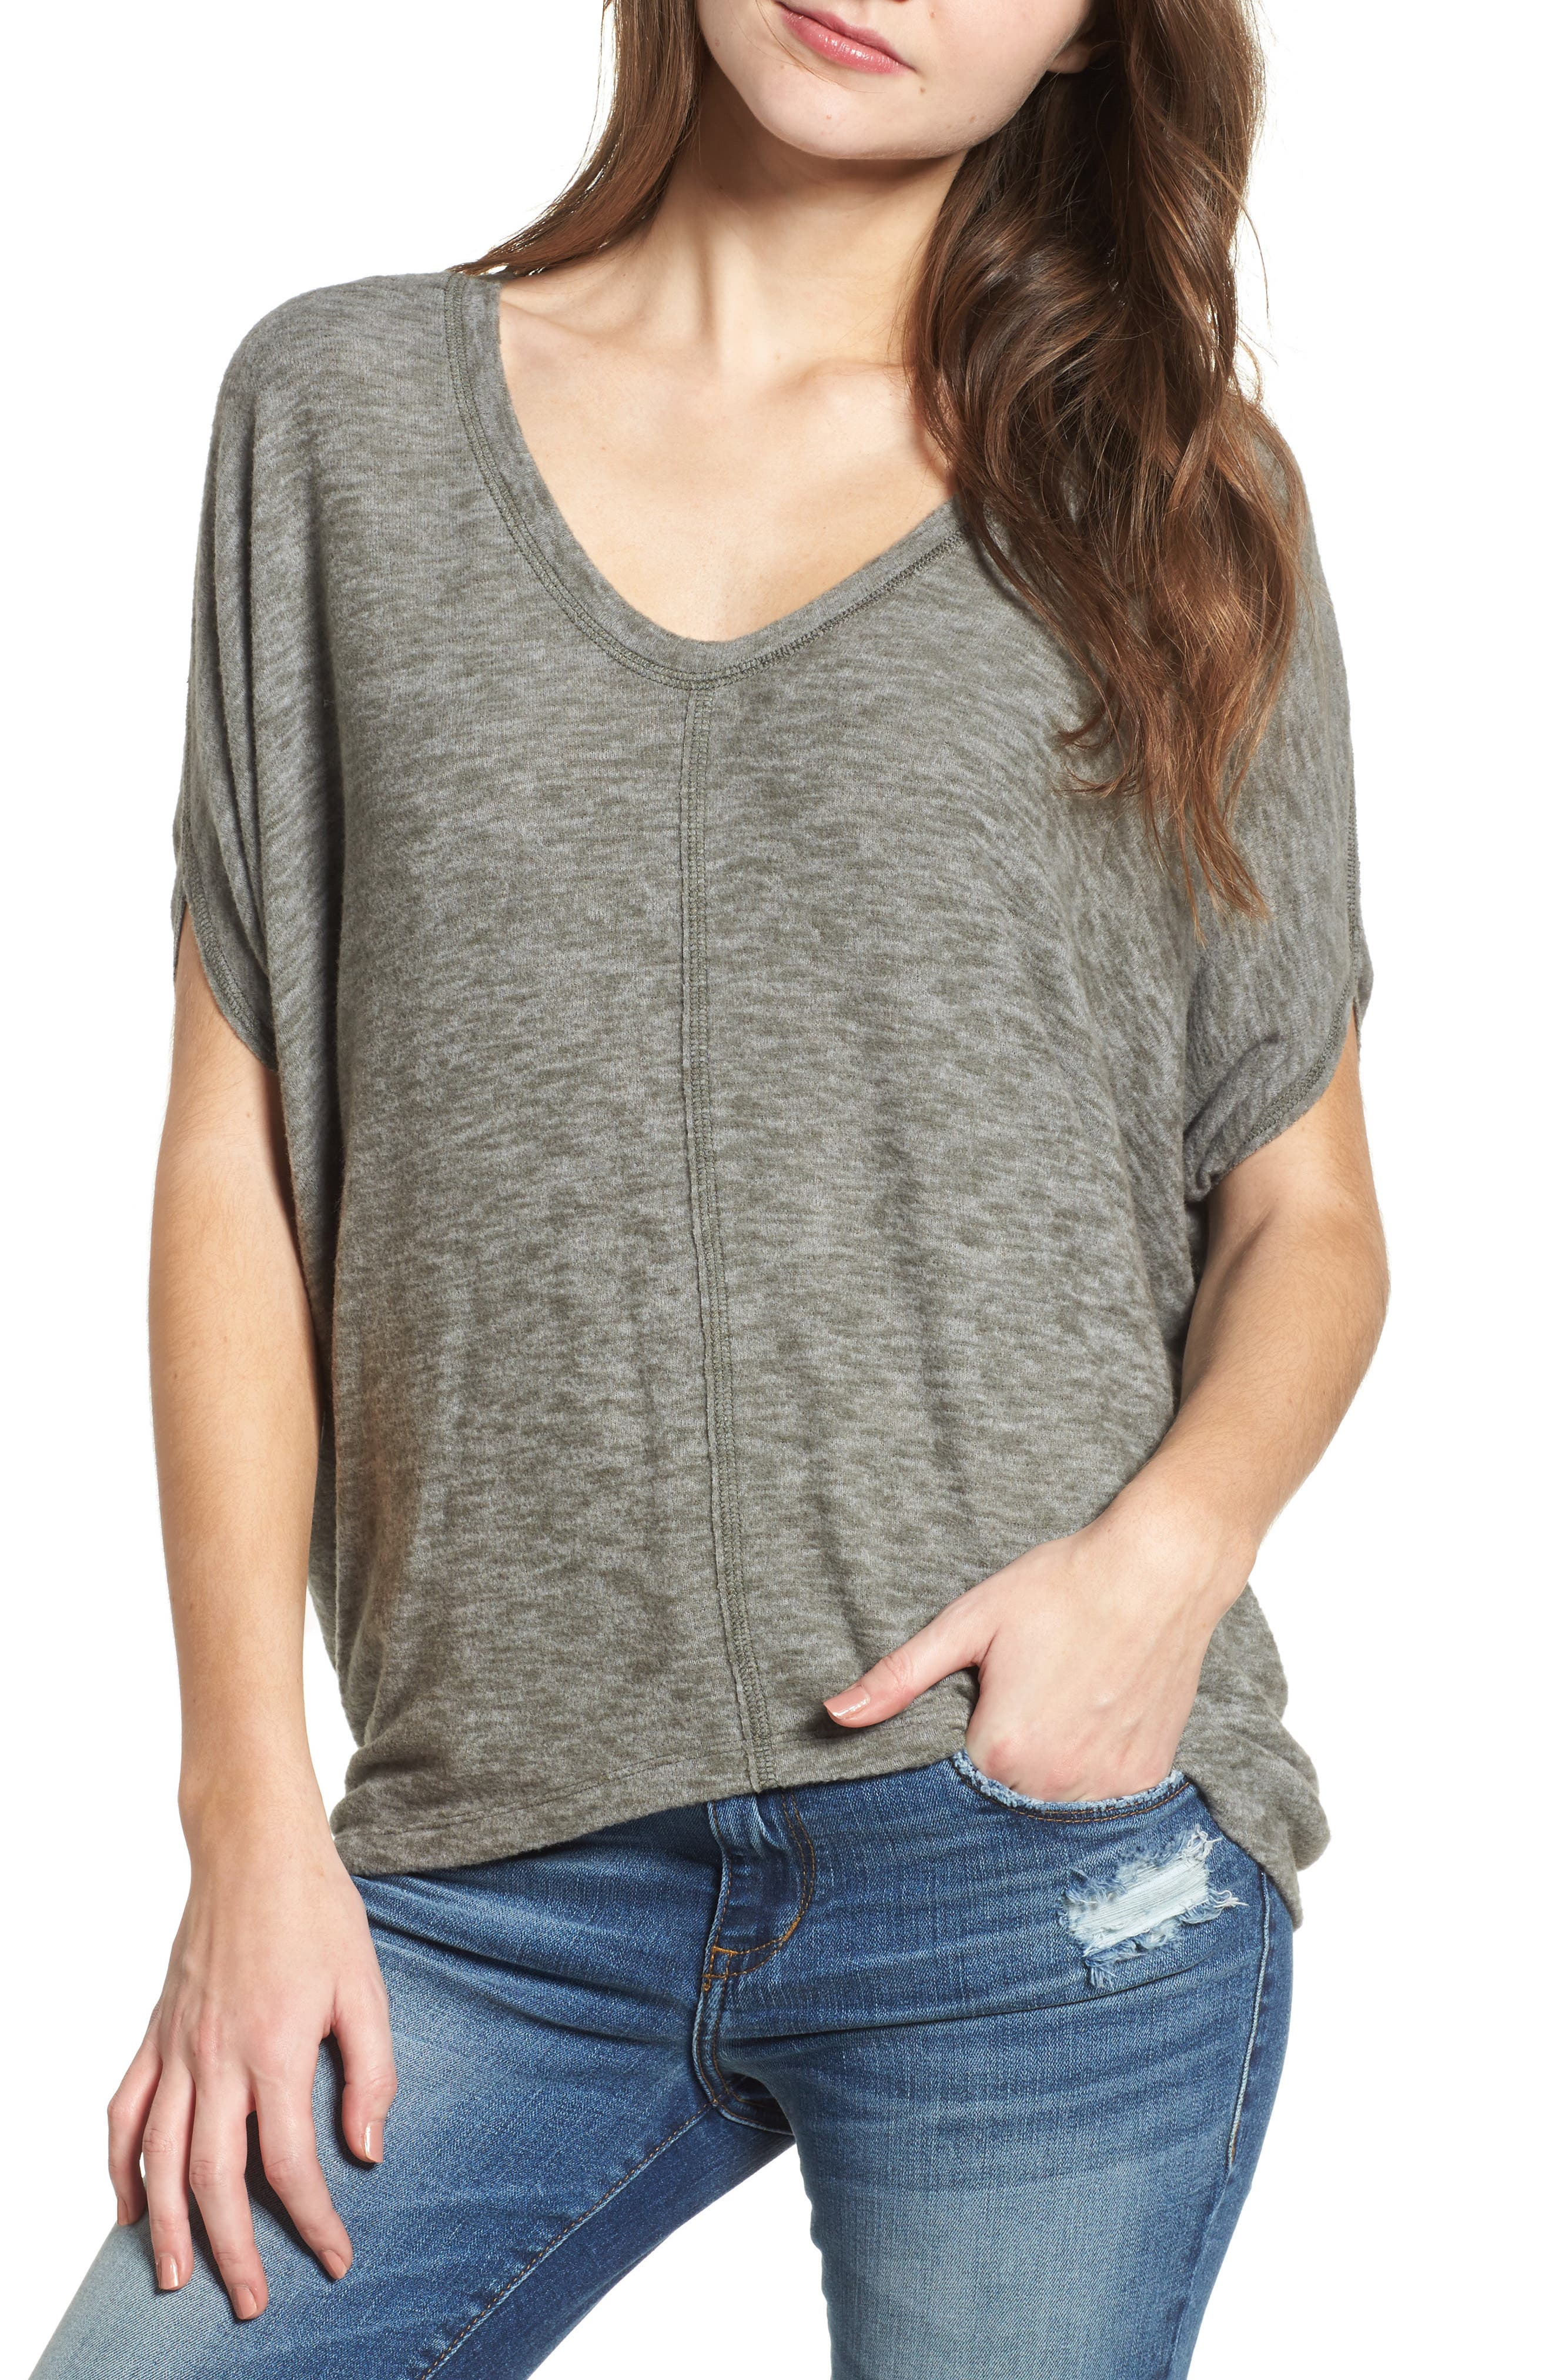 Cocoon Top,                         Main,                         color, Olive Green